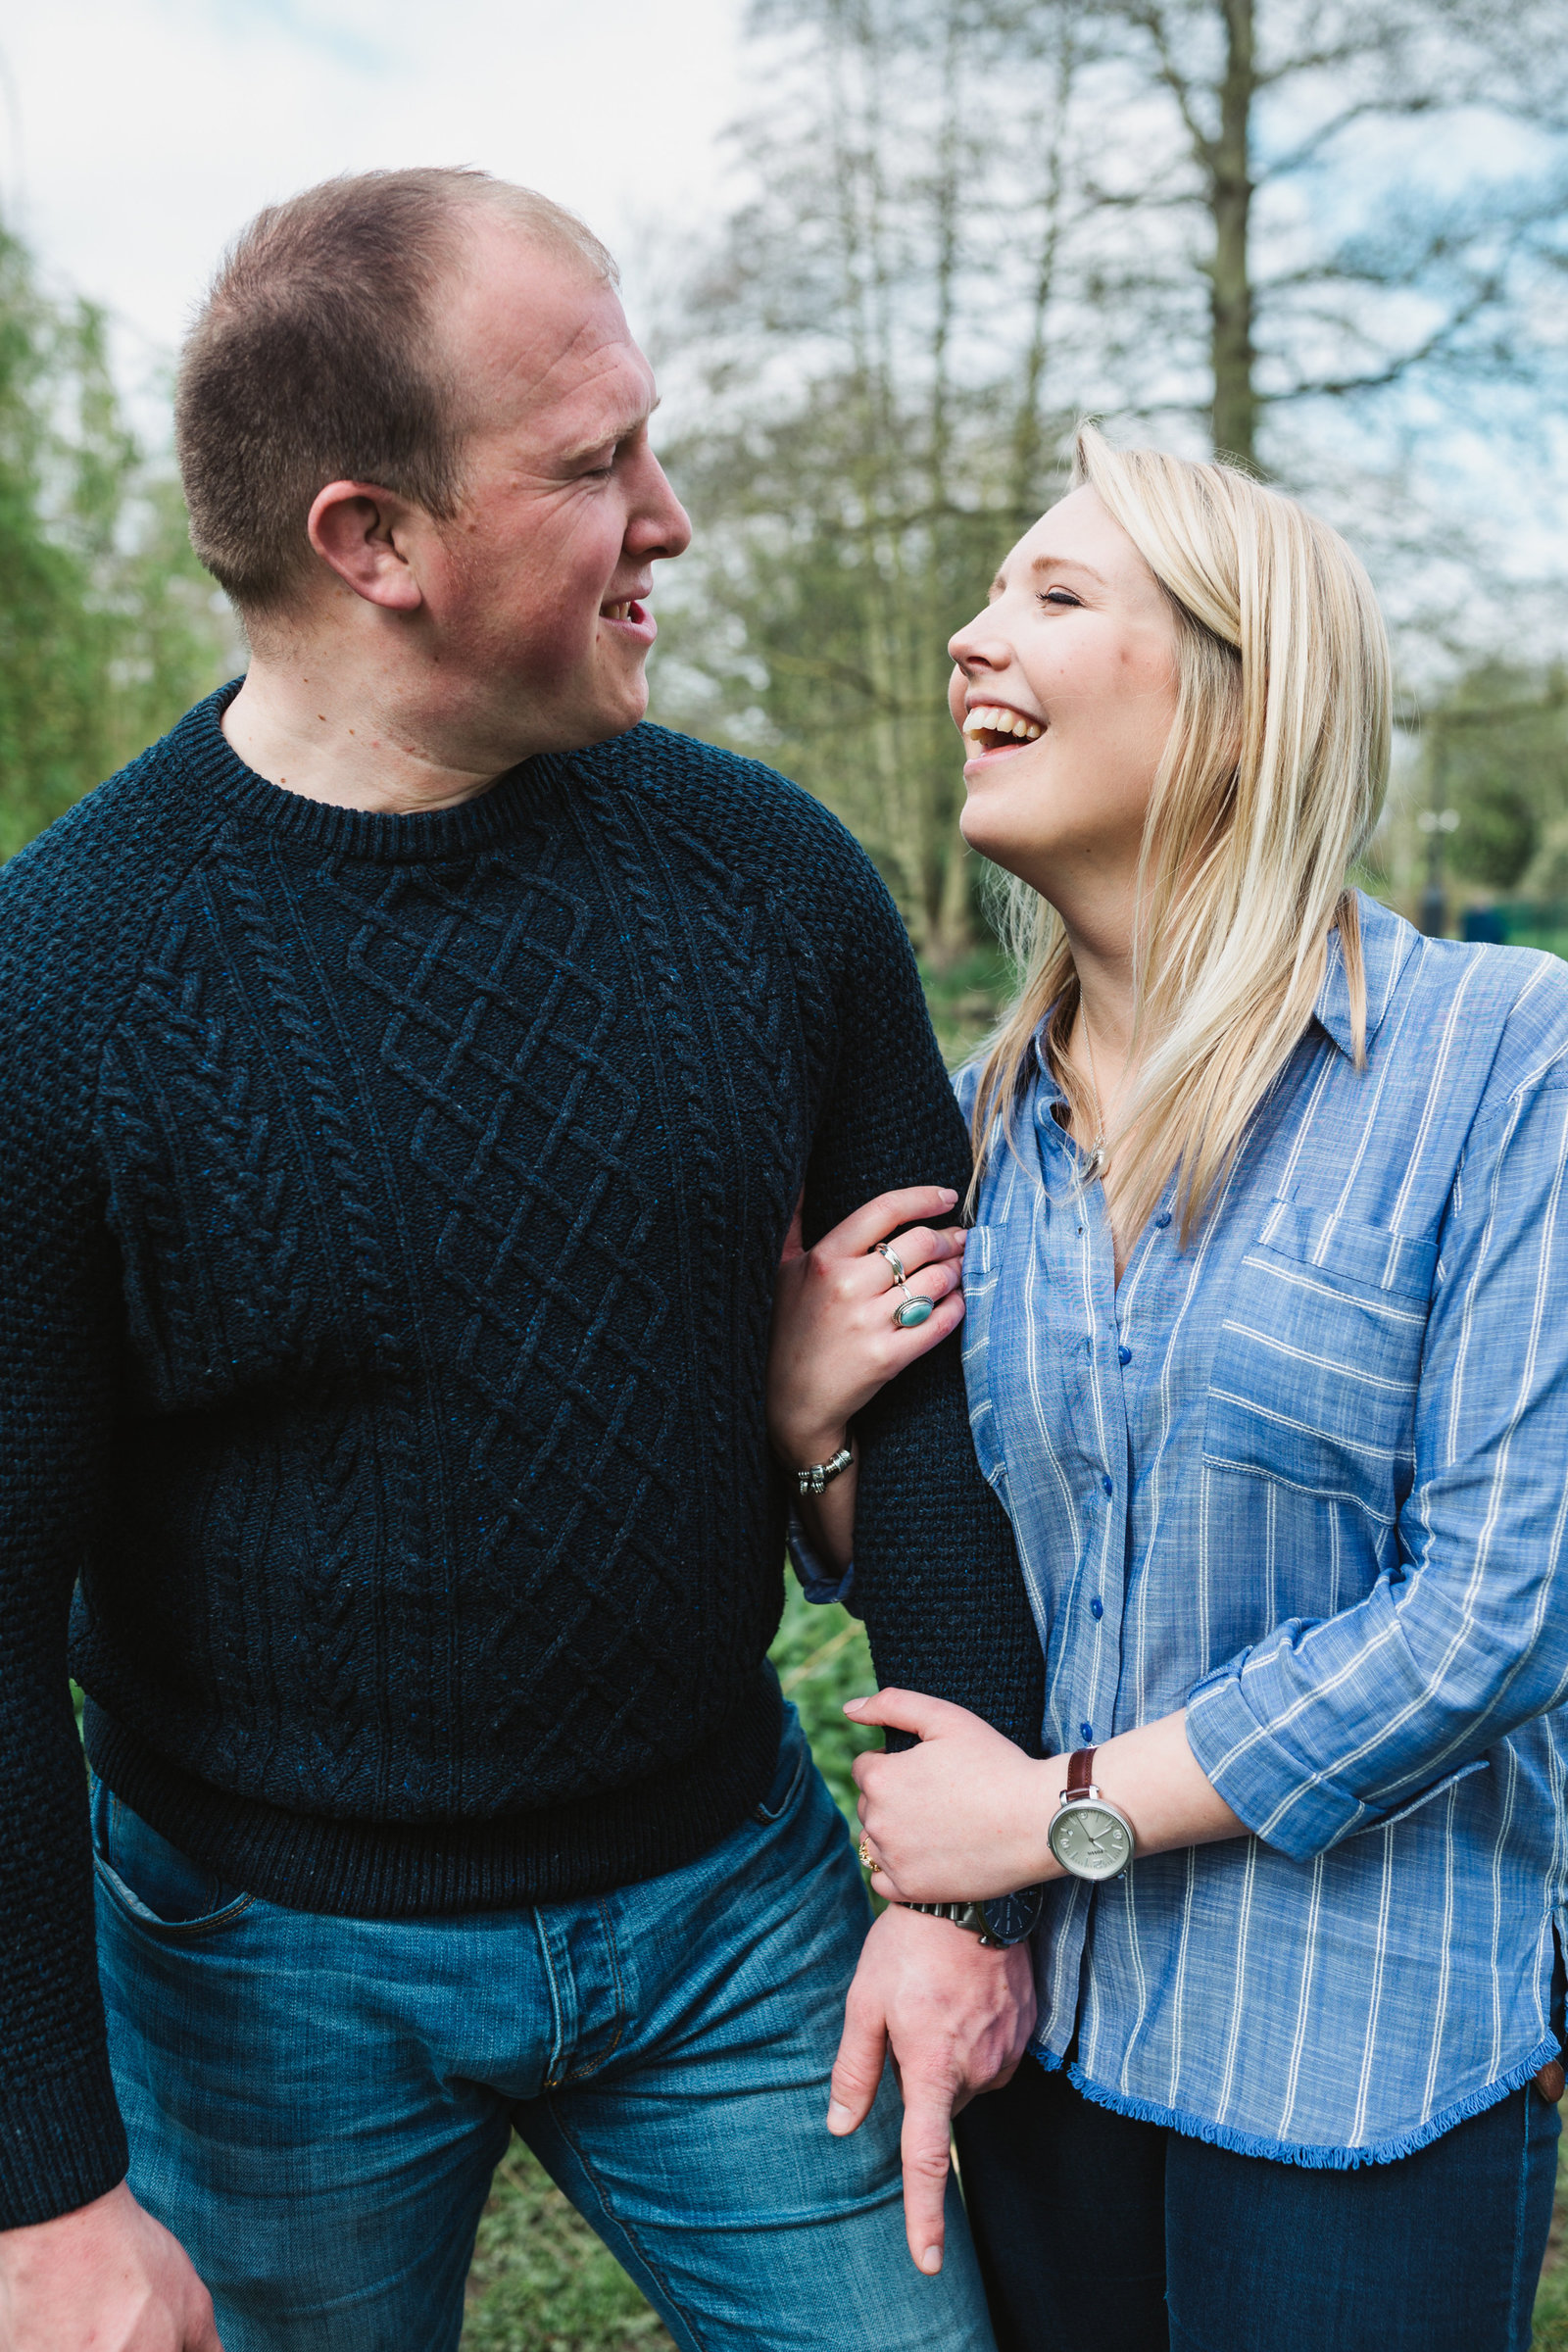 Laughing engaged couple linking arms in Ipswich for a natural photo